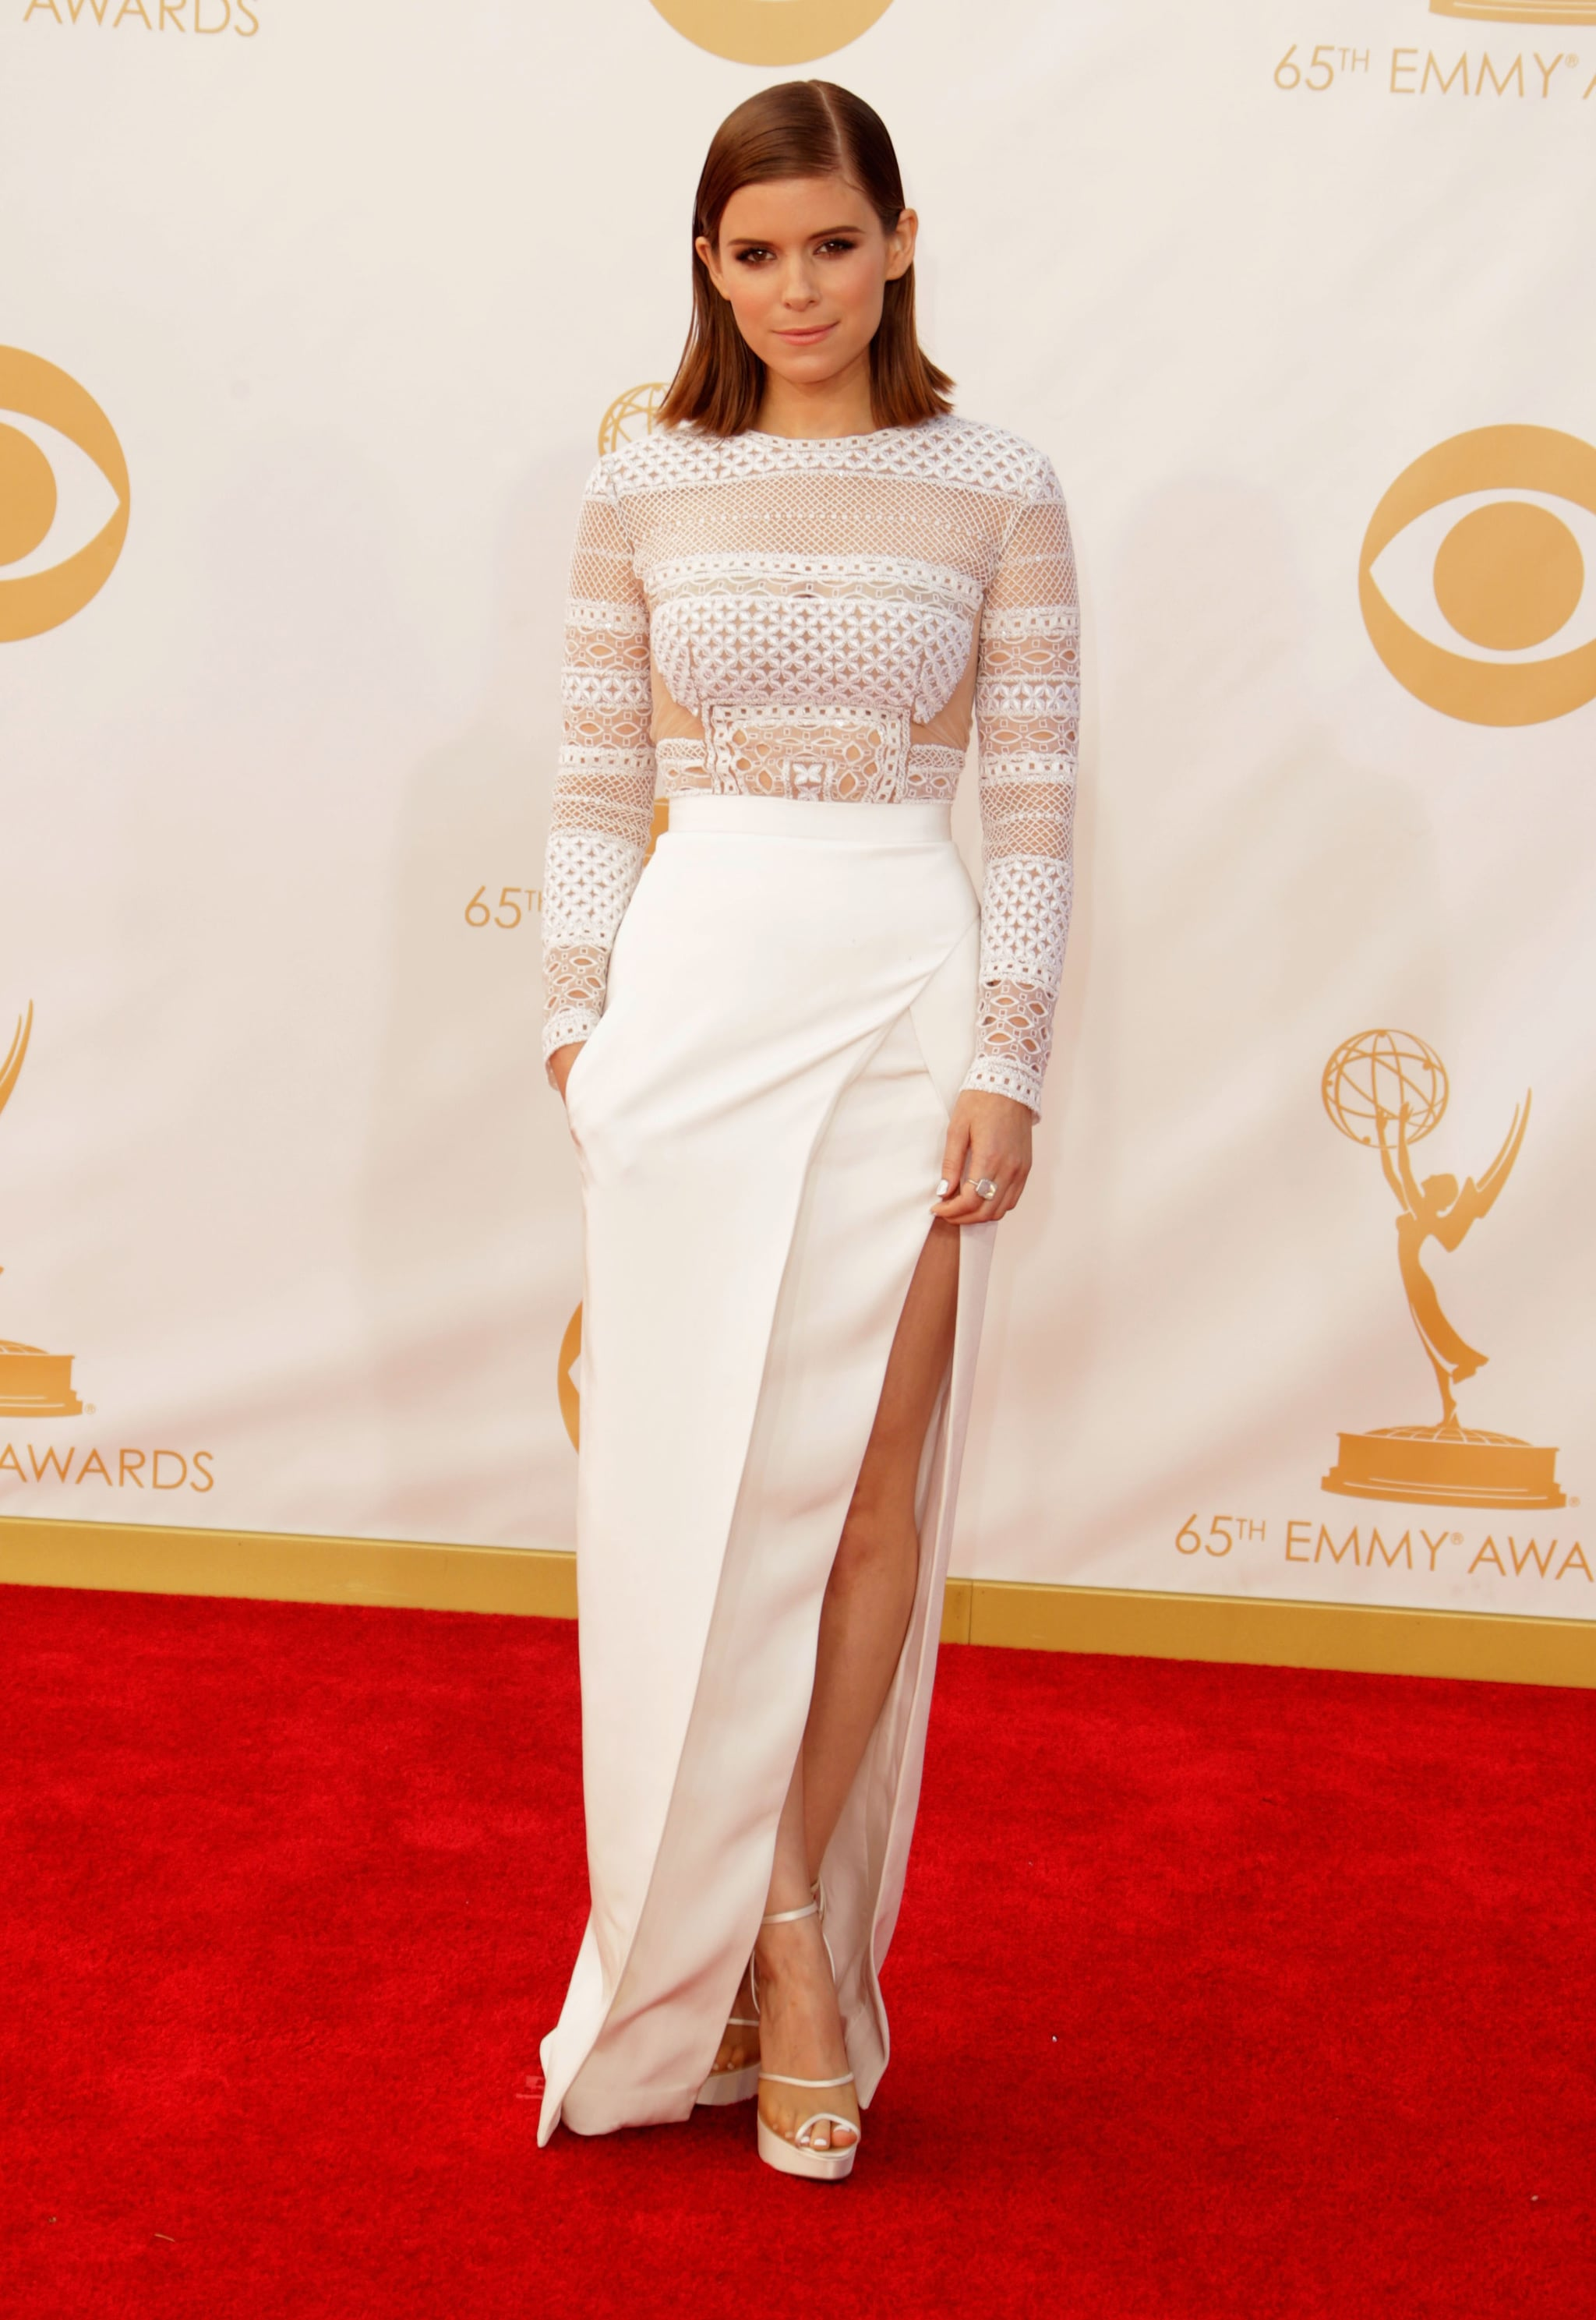 Kate Mara stepped out for the 2013 Emmy Awards.